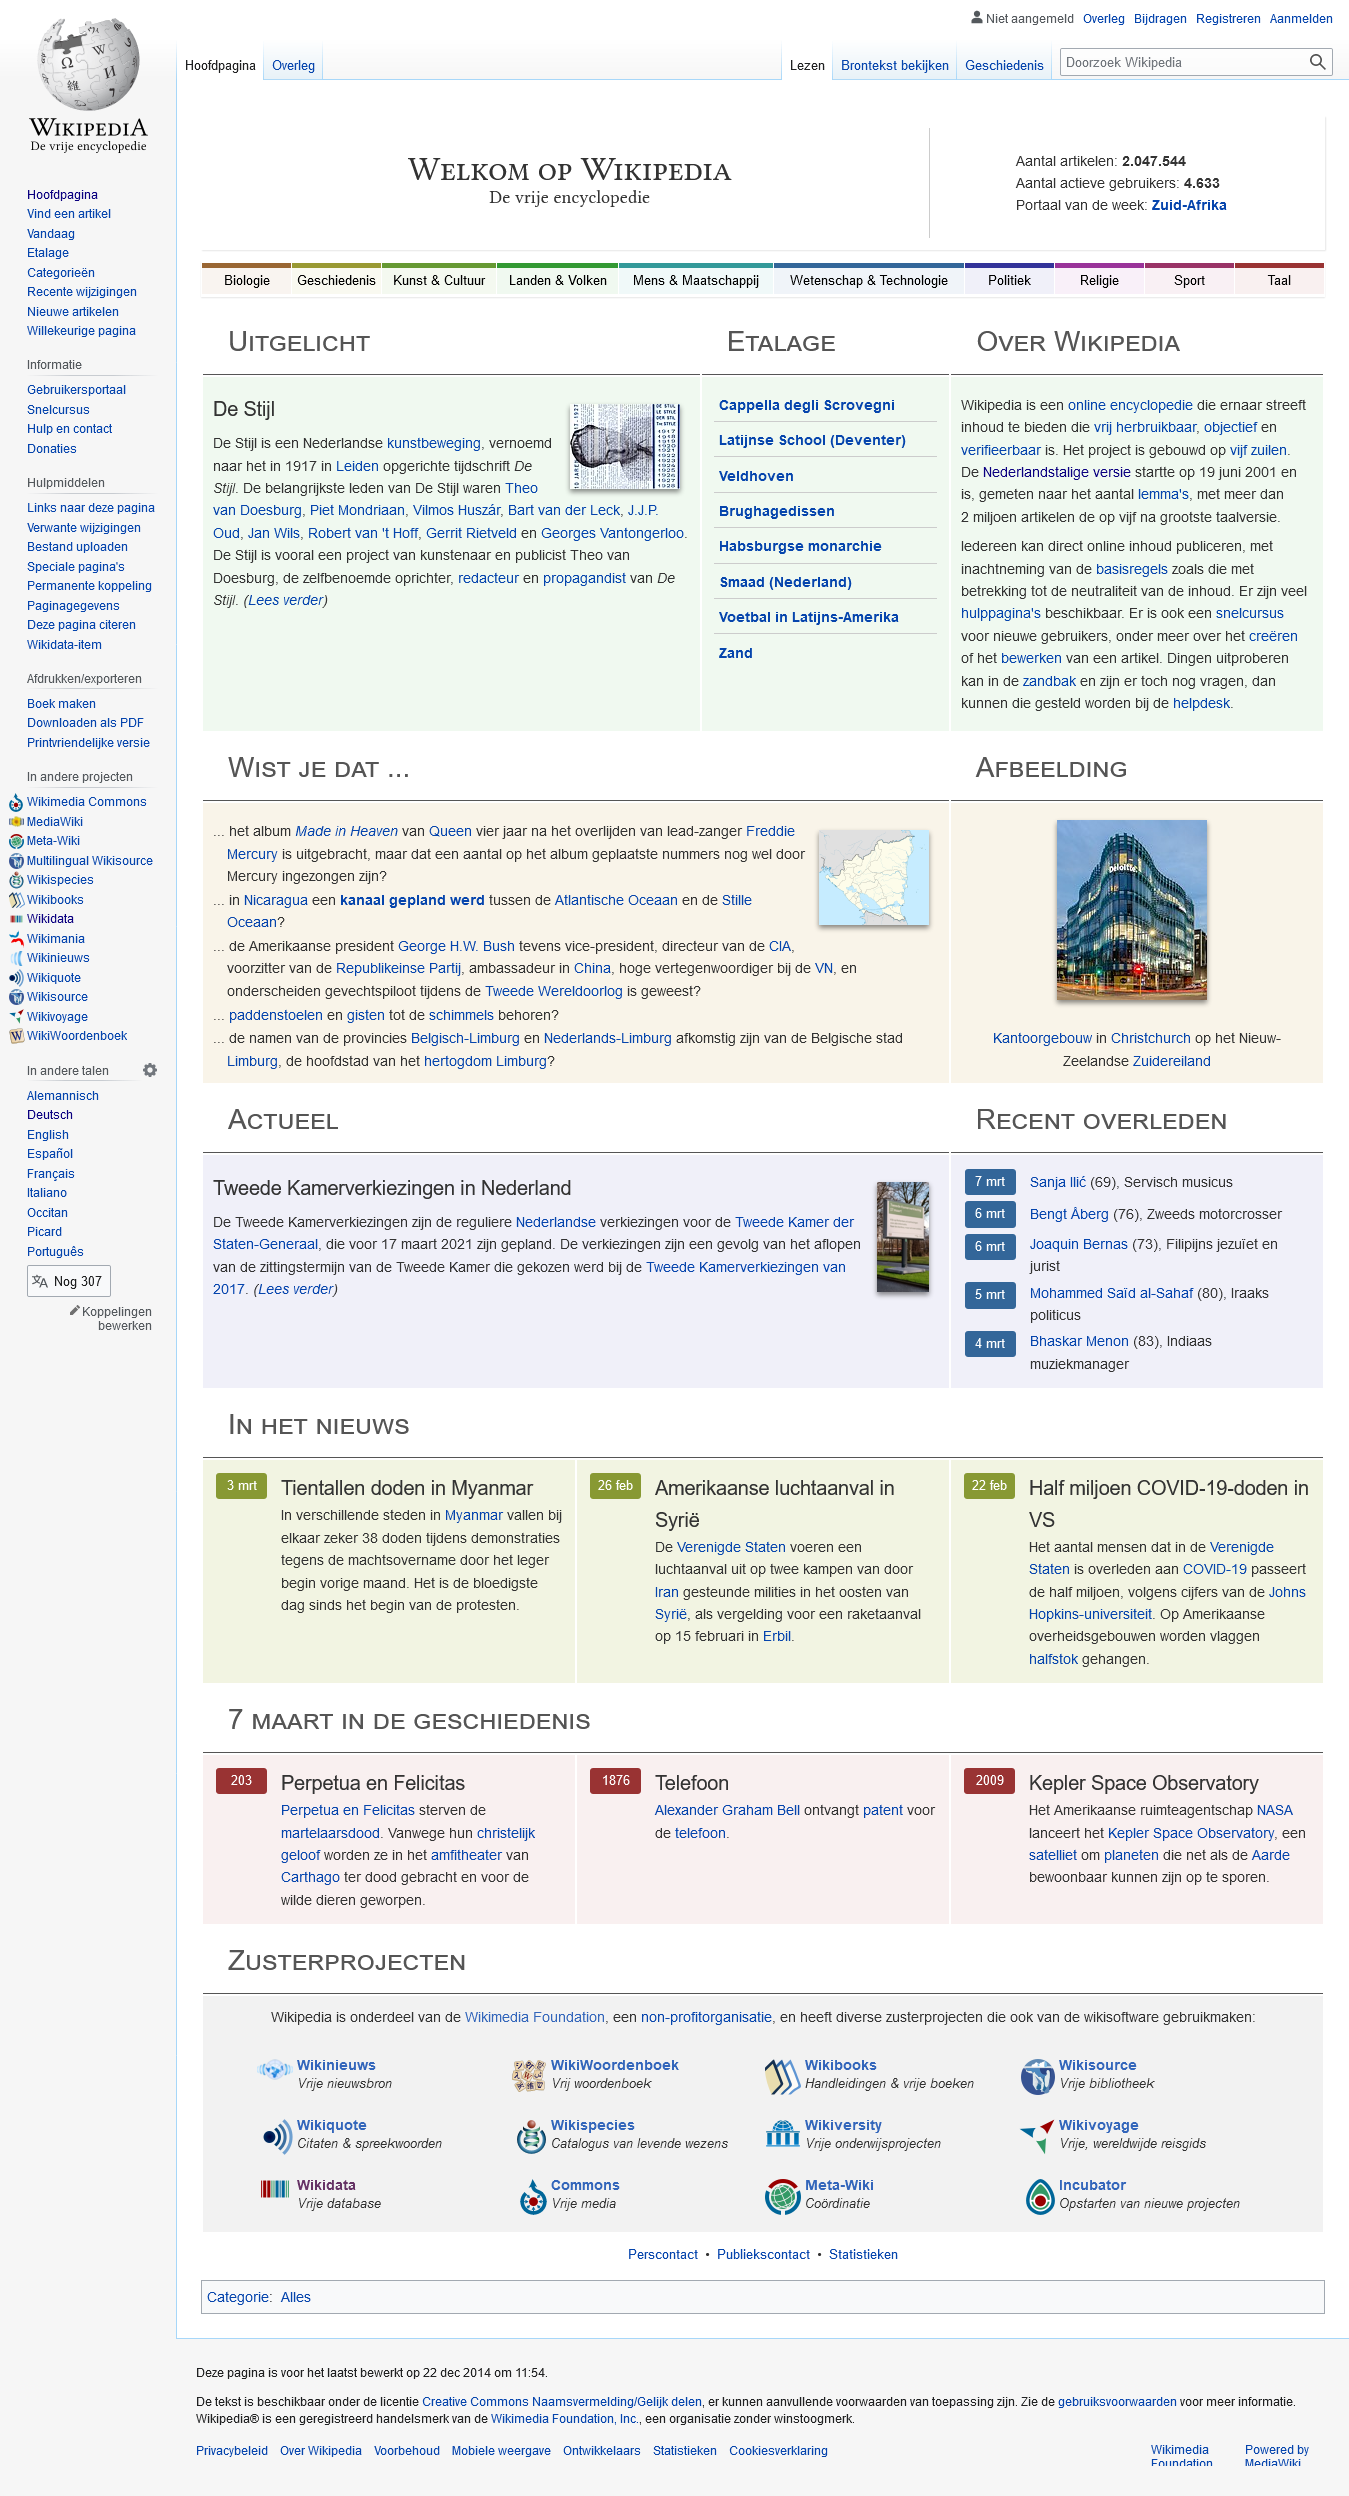 The Dutch Wikipedia in May 2007